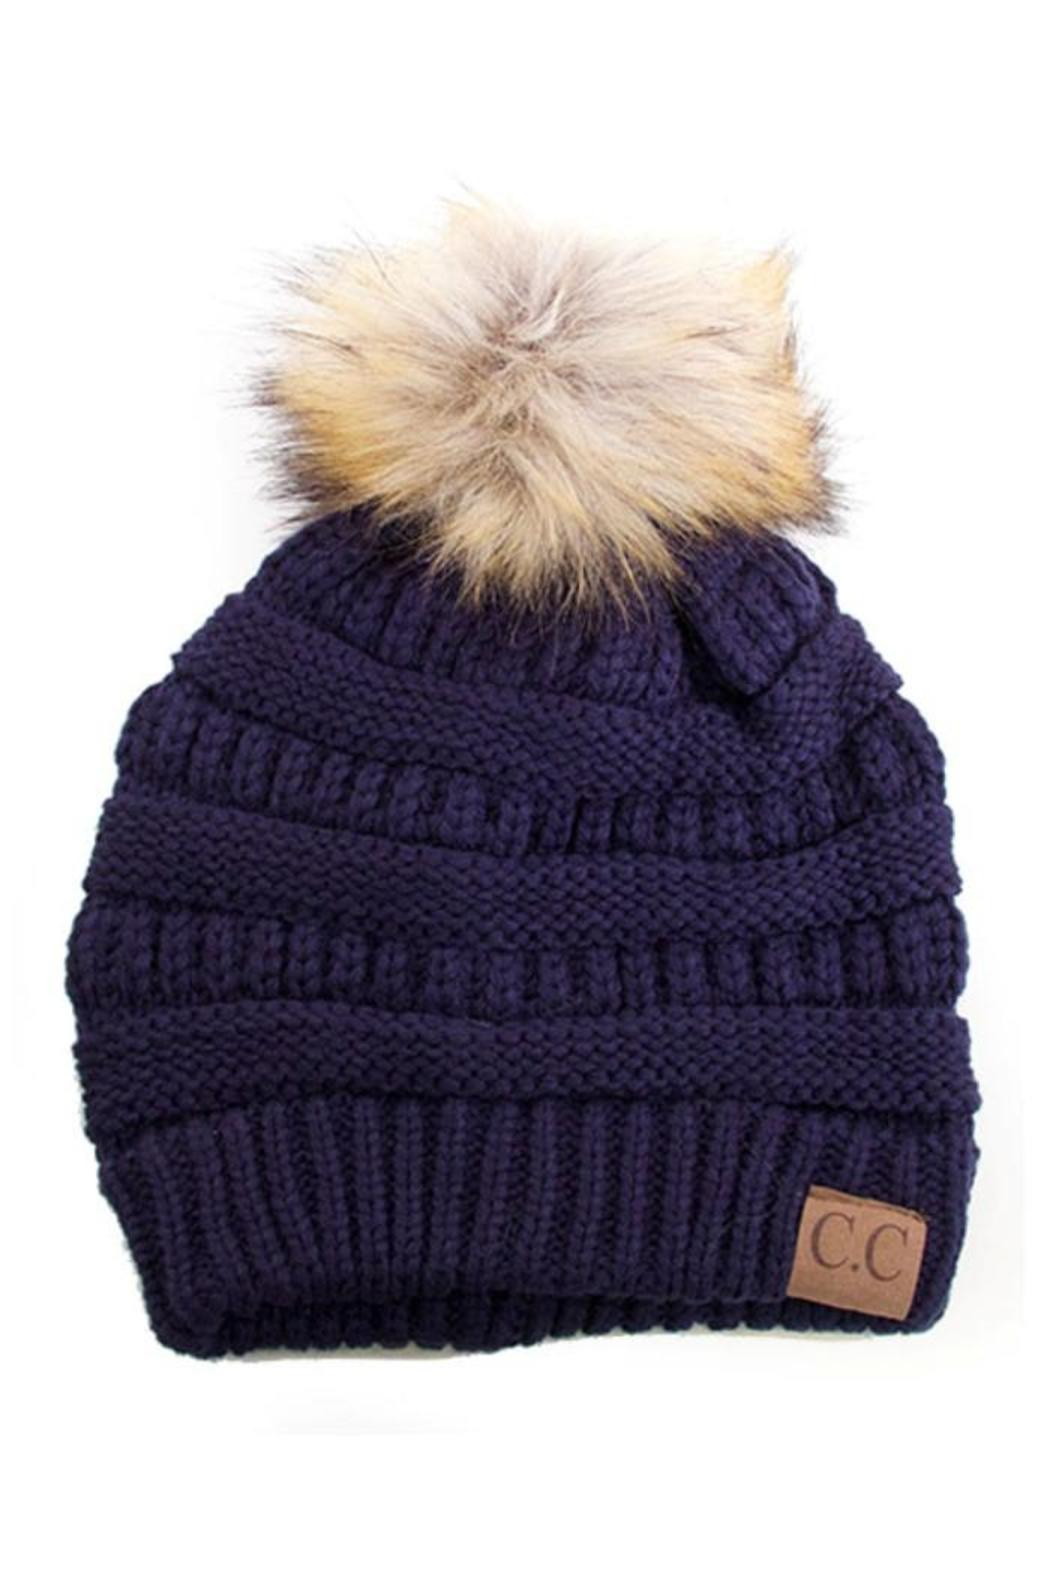 C.C. Navy Beanie from Minneapolis by StyleTrolley — Shoptiques 0dcd5f55cdc